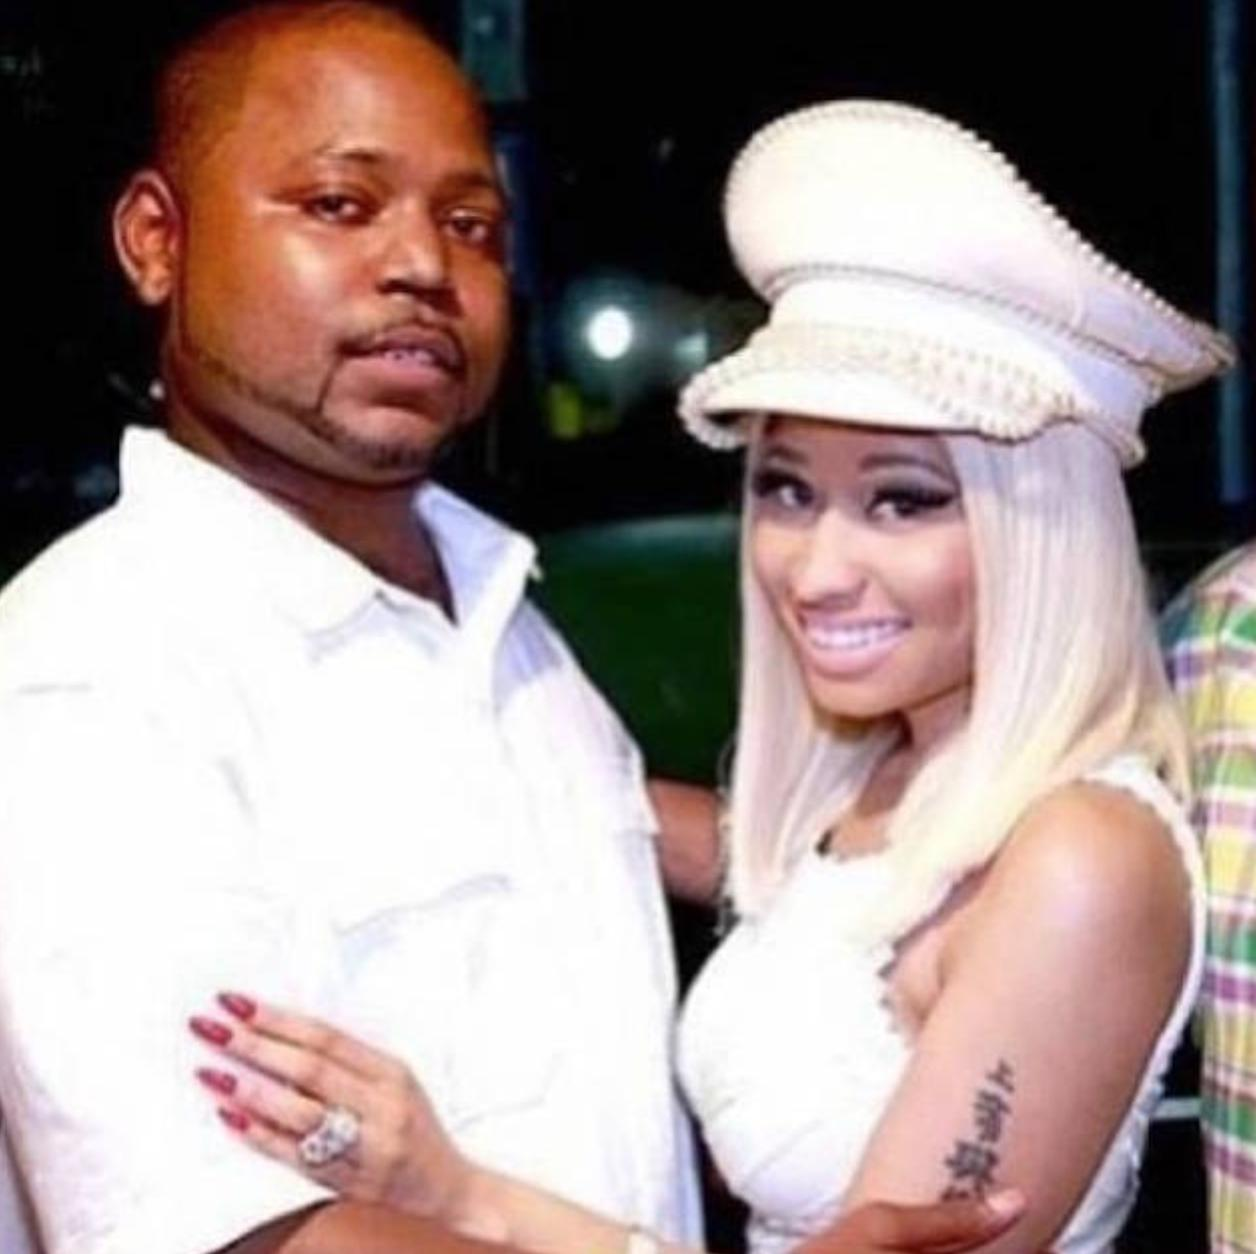 Nicki Minaj Takes Her Mother to Visit Brother in Jail